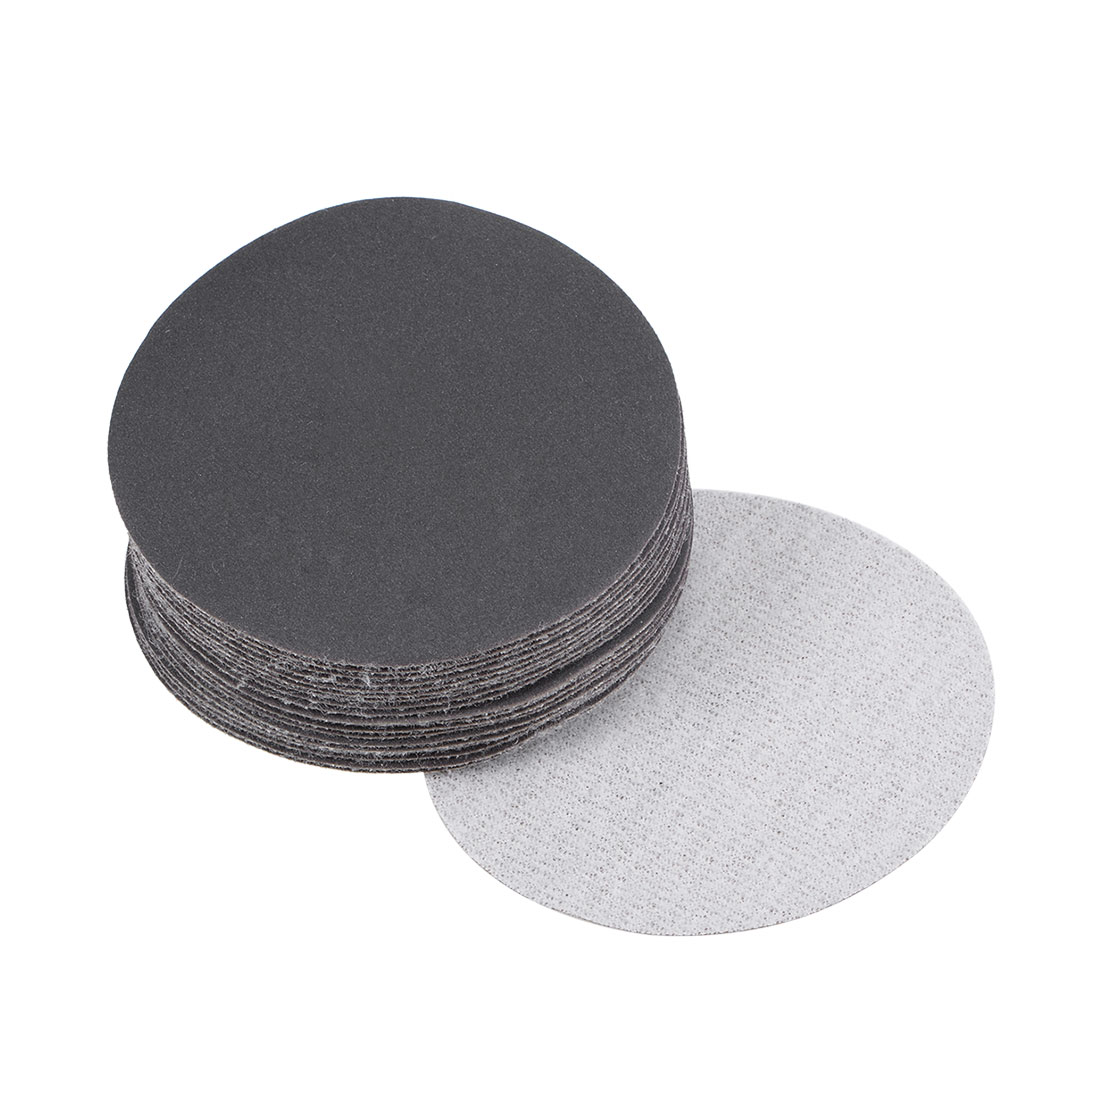 3 inch Wet Dry Discs 400 Grit Hook and Loop Sanding Disc Silicon Carbide 20pcs